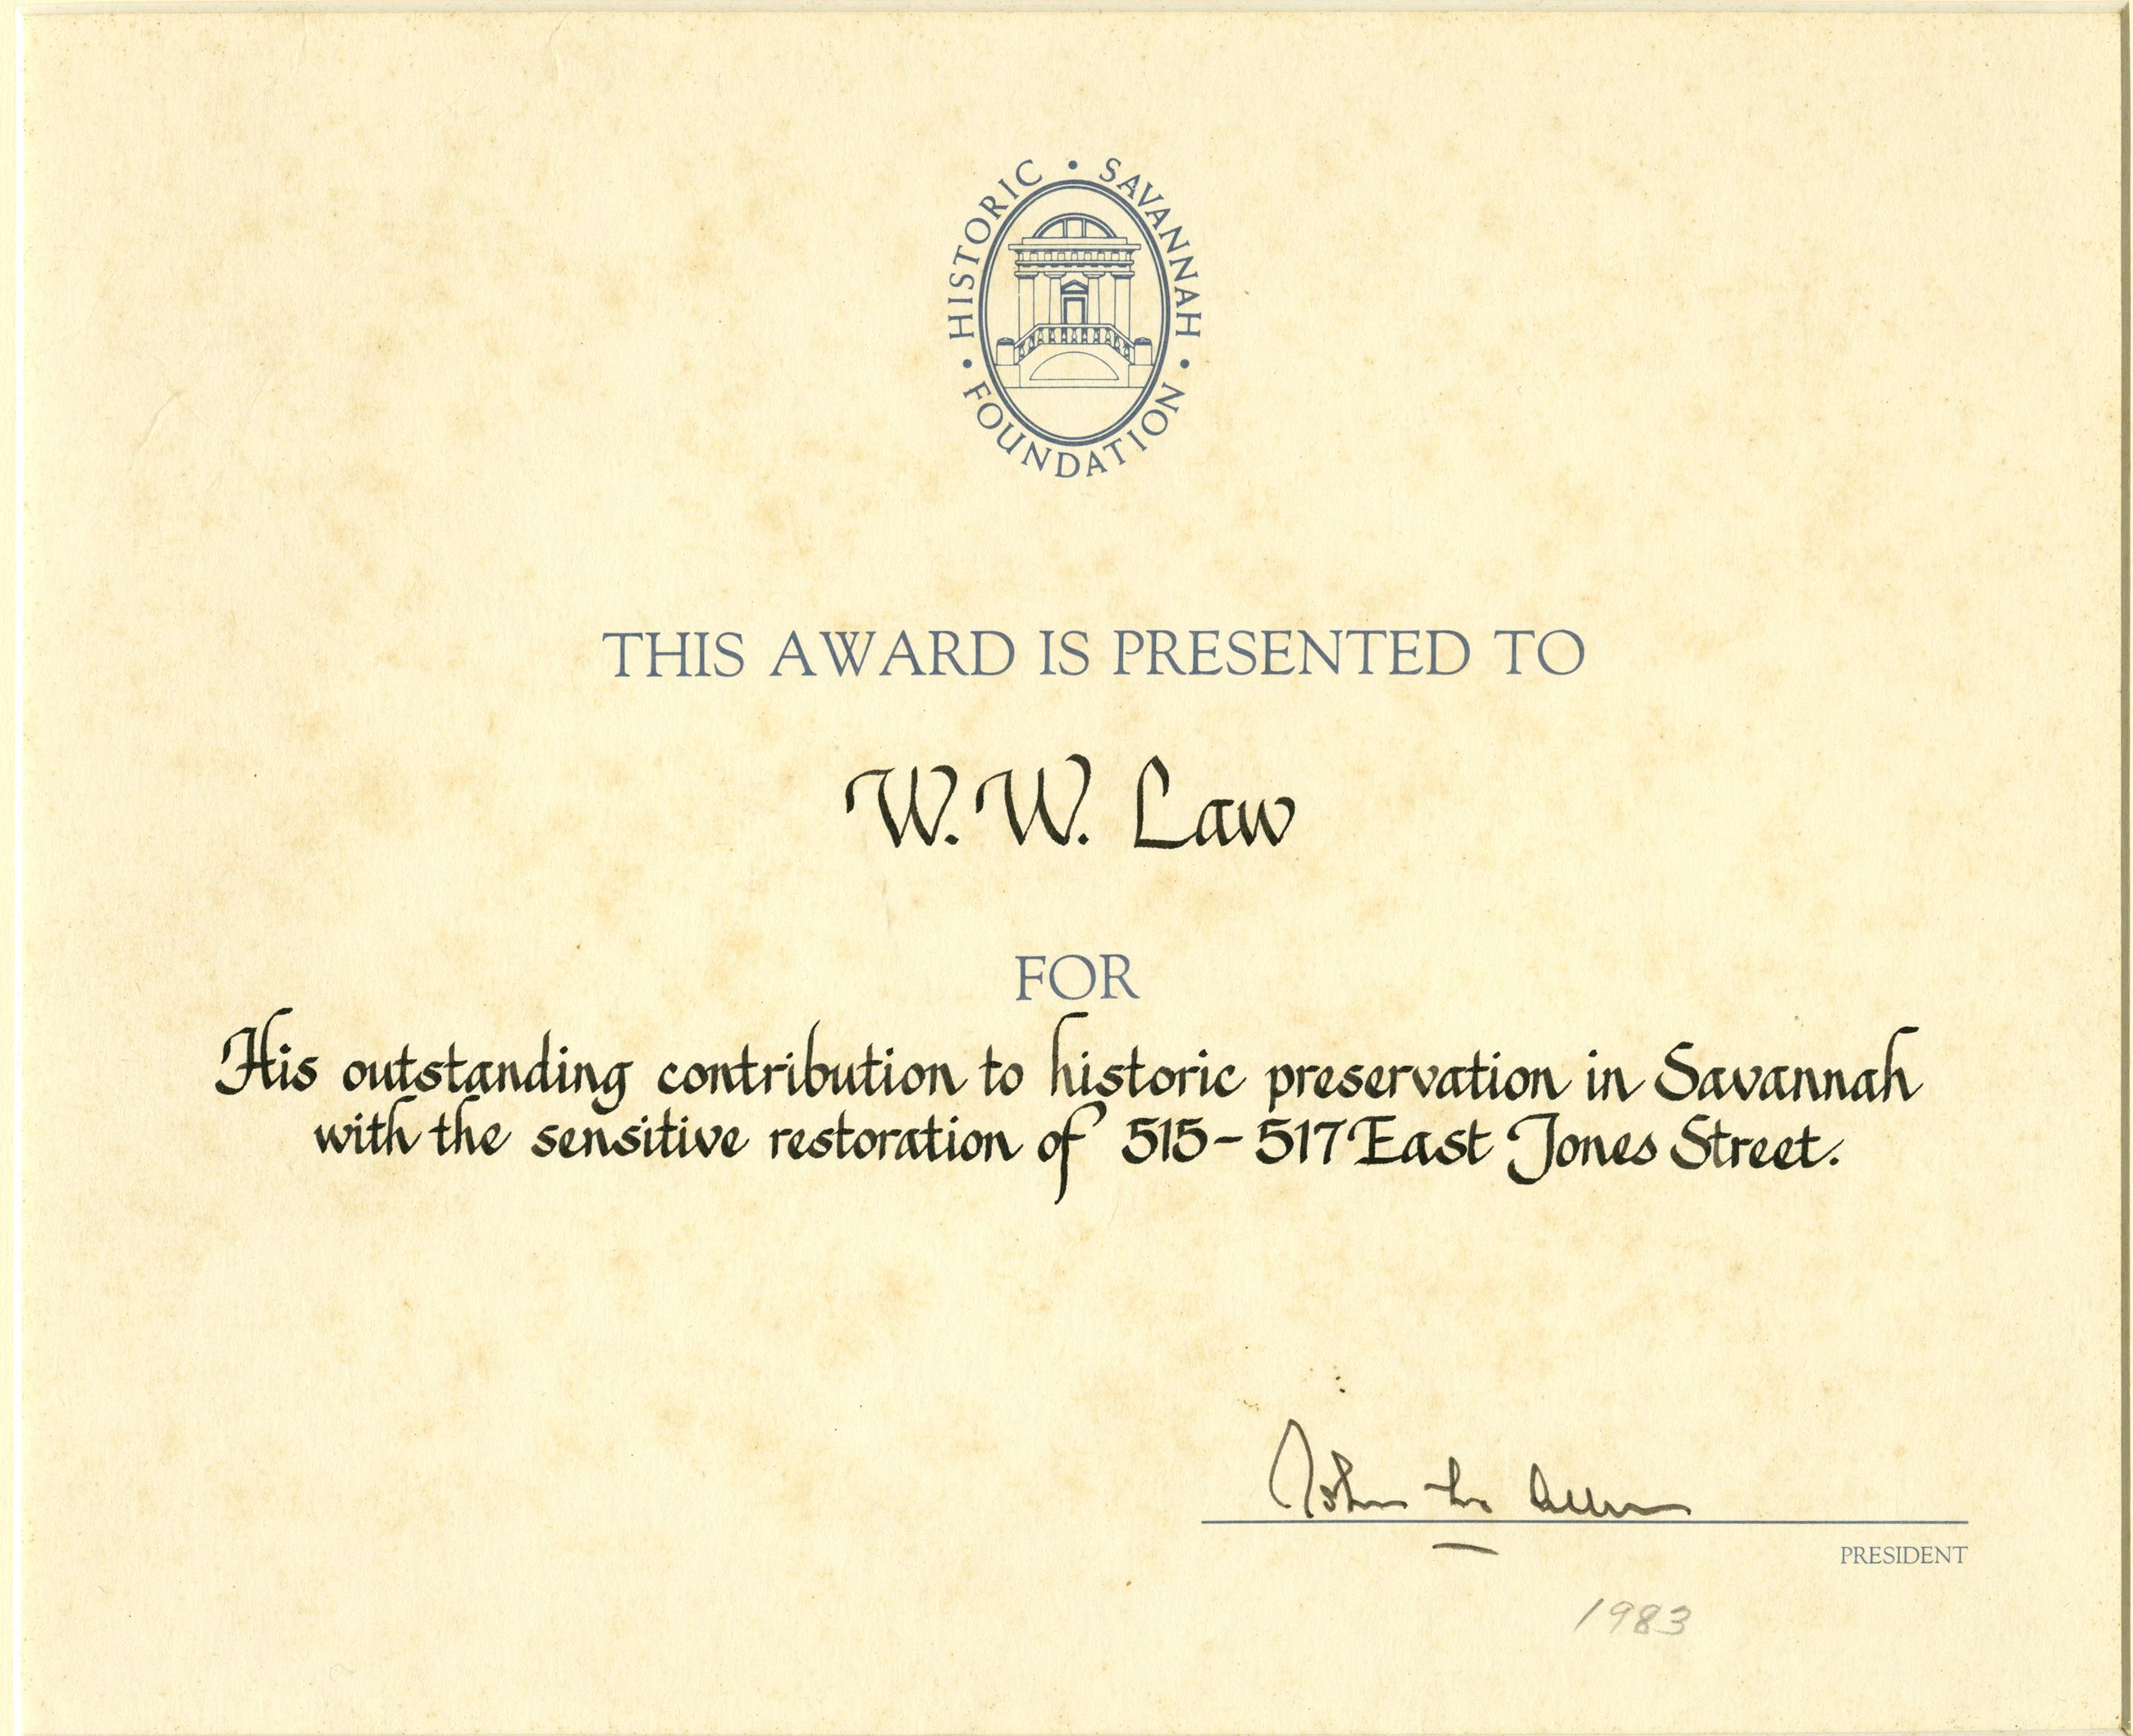 Jones Street Historic Preservation Award